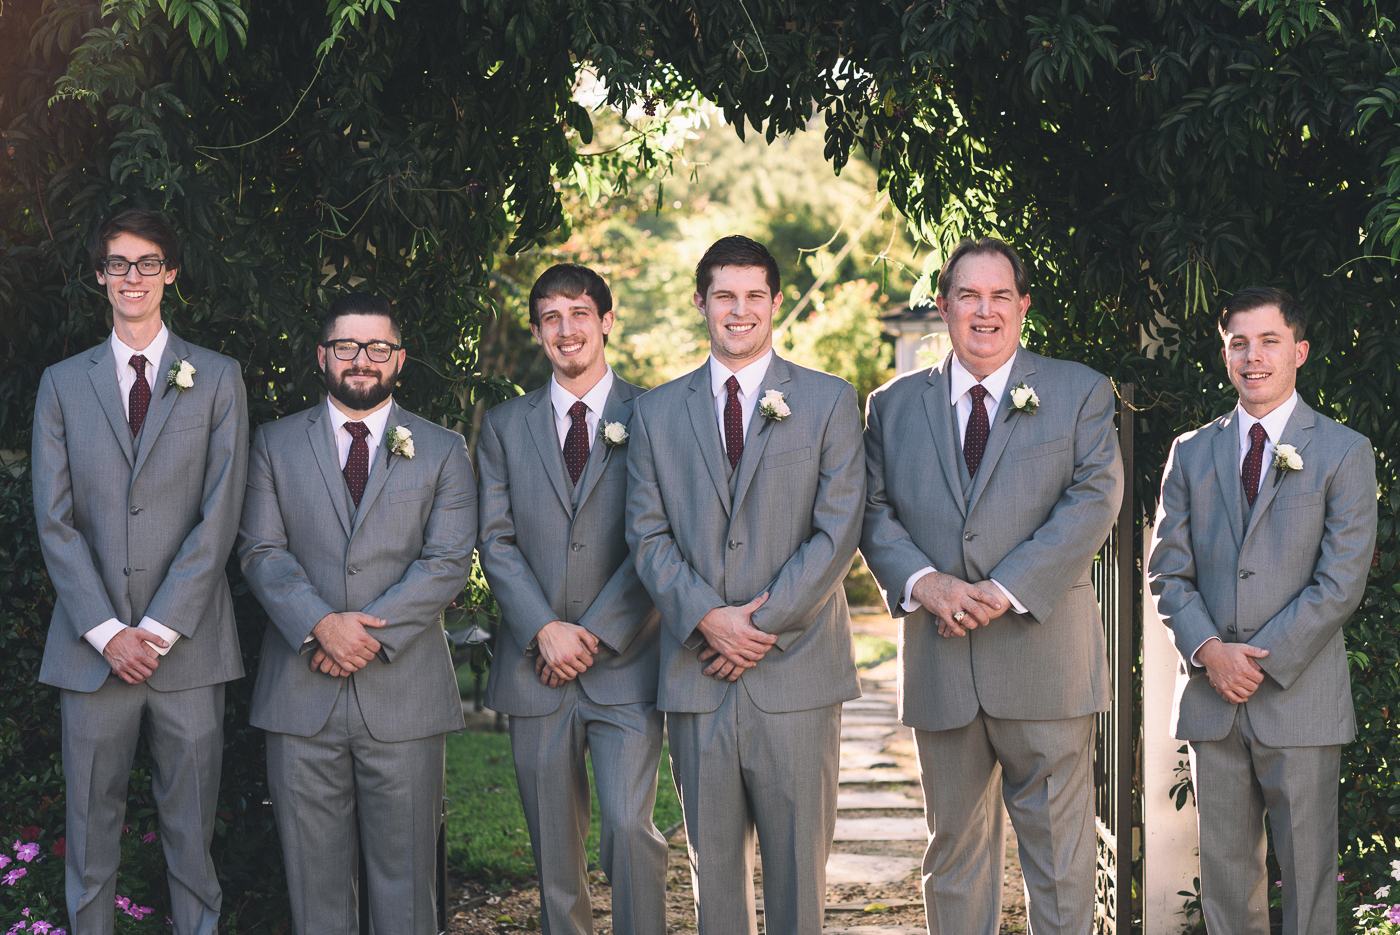 Groomsmen portraits father and son boutonniere grey suit maroon tie